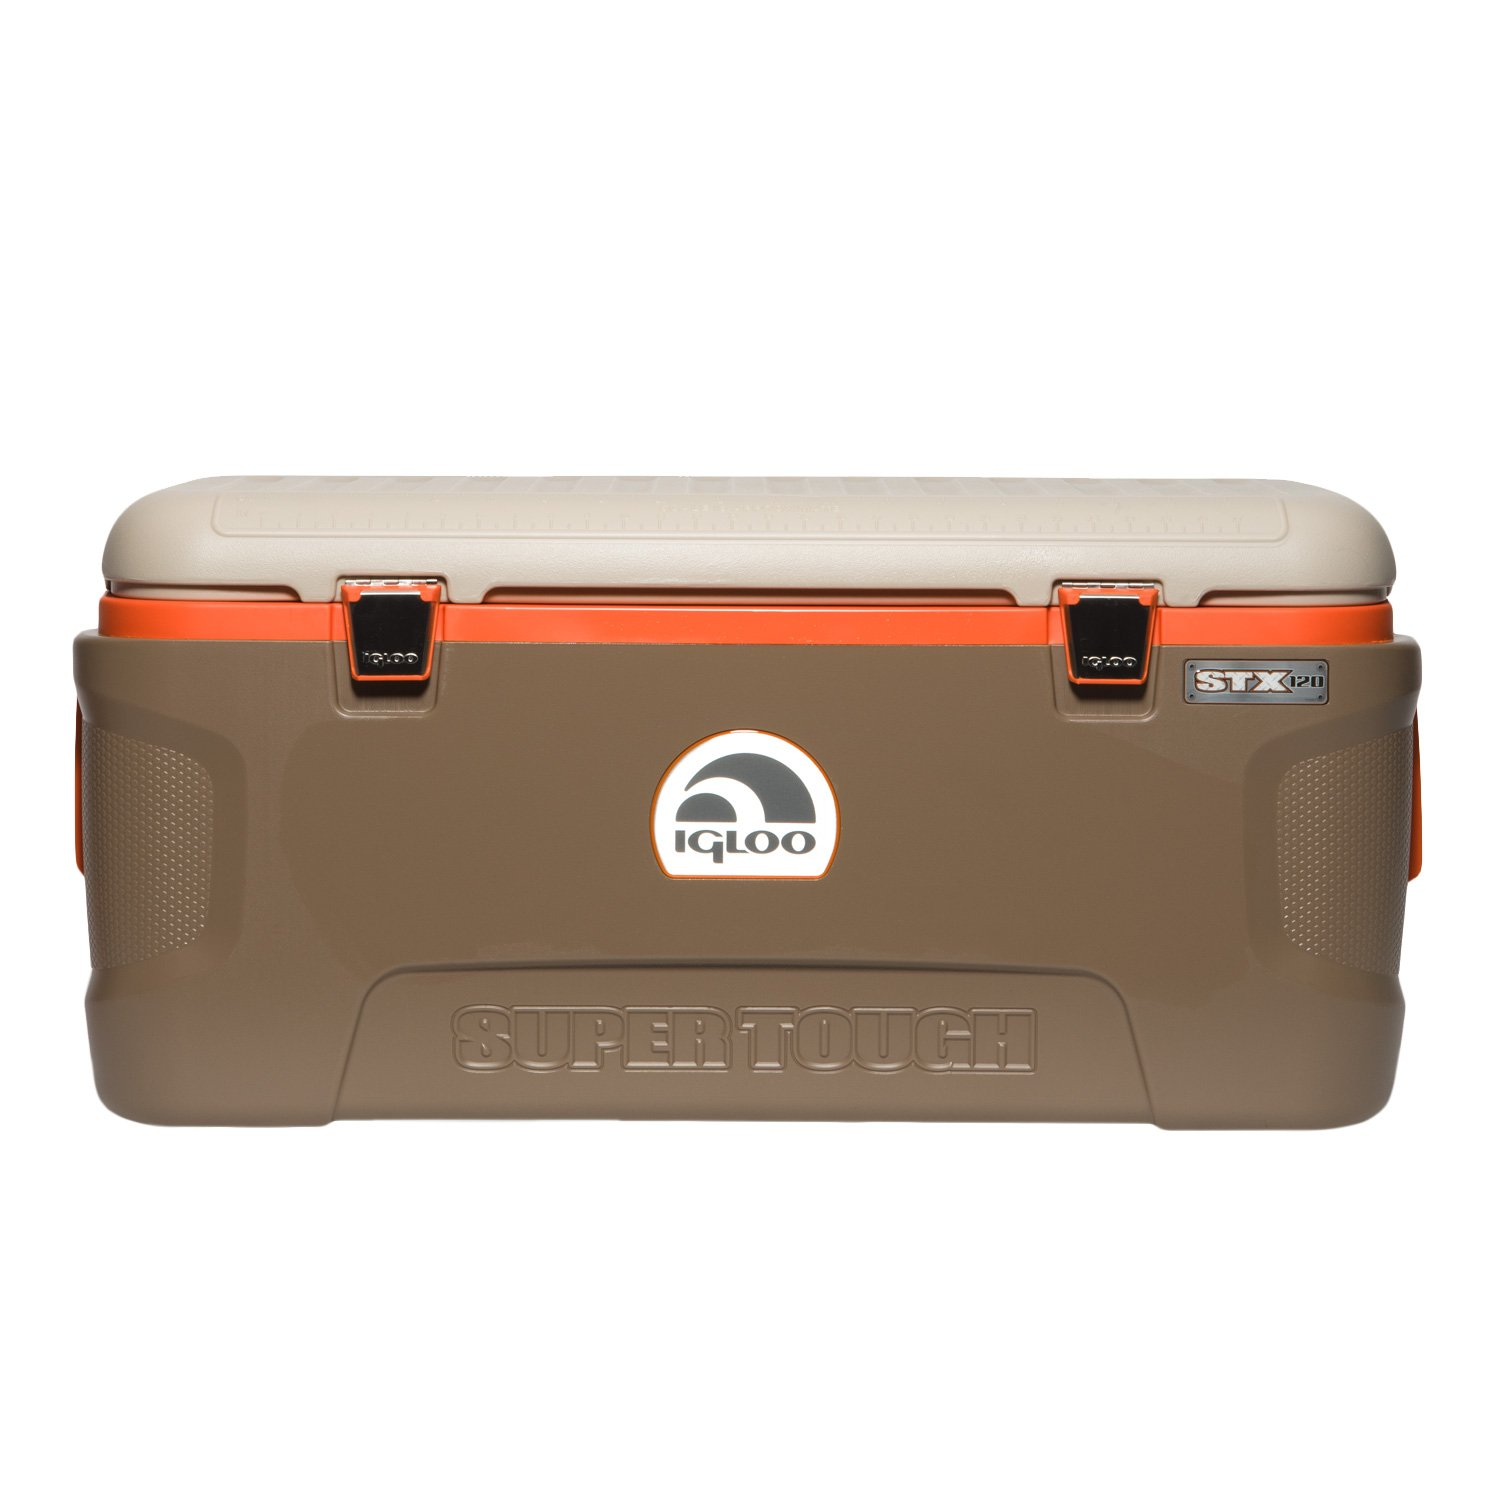 Igloo 44938 Super Tough STX Sportsman Coolers, 120-Quart by Igloo